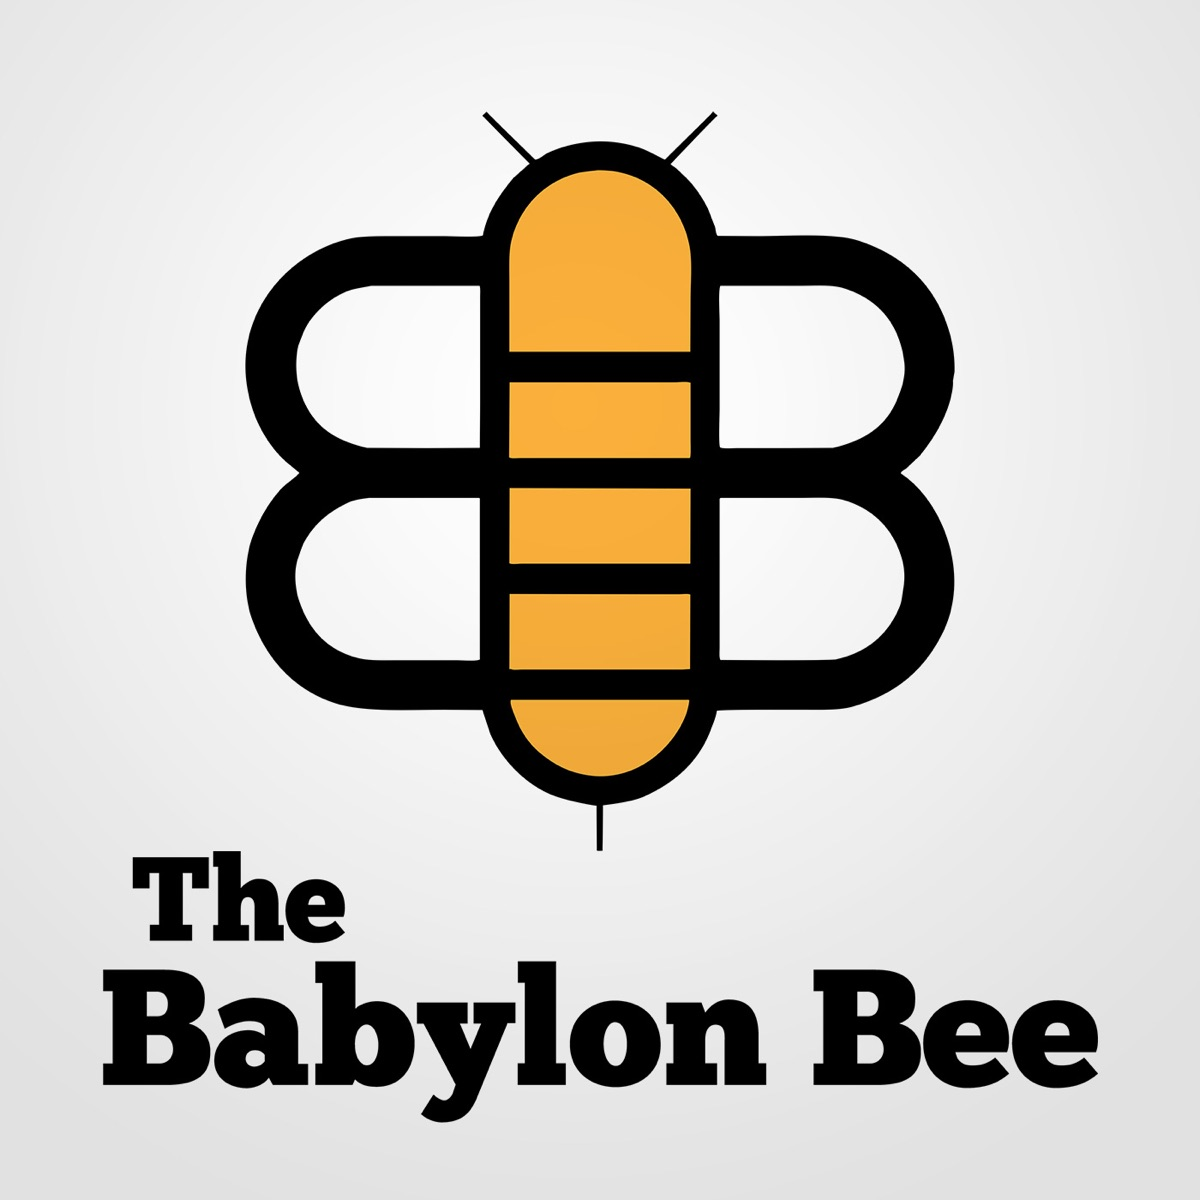 The Babylon Bee